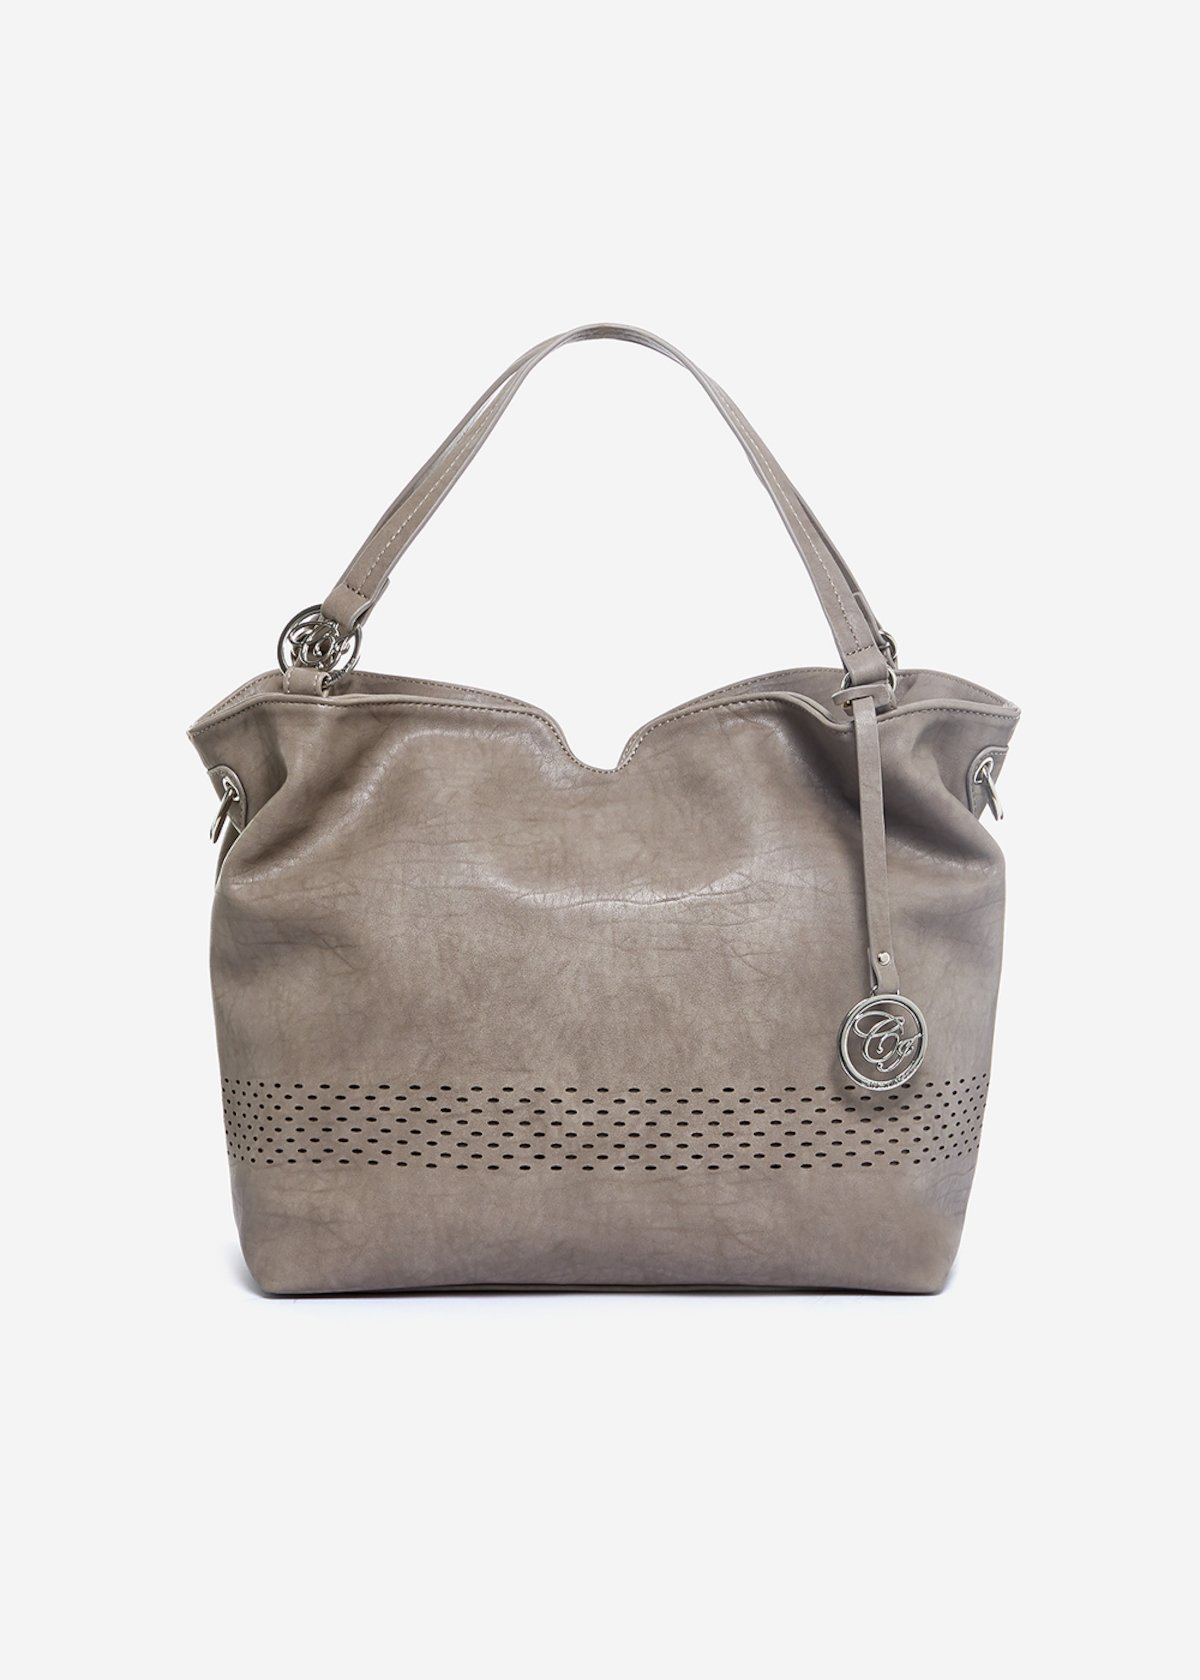 Birka faux leather shoulder bag with perforated fret pattern